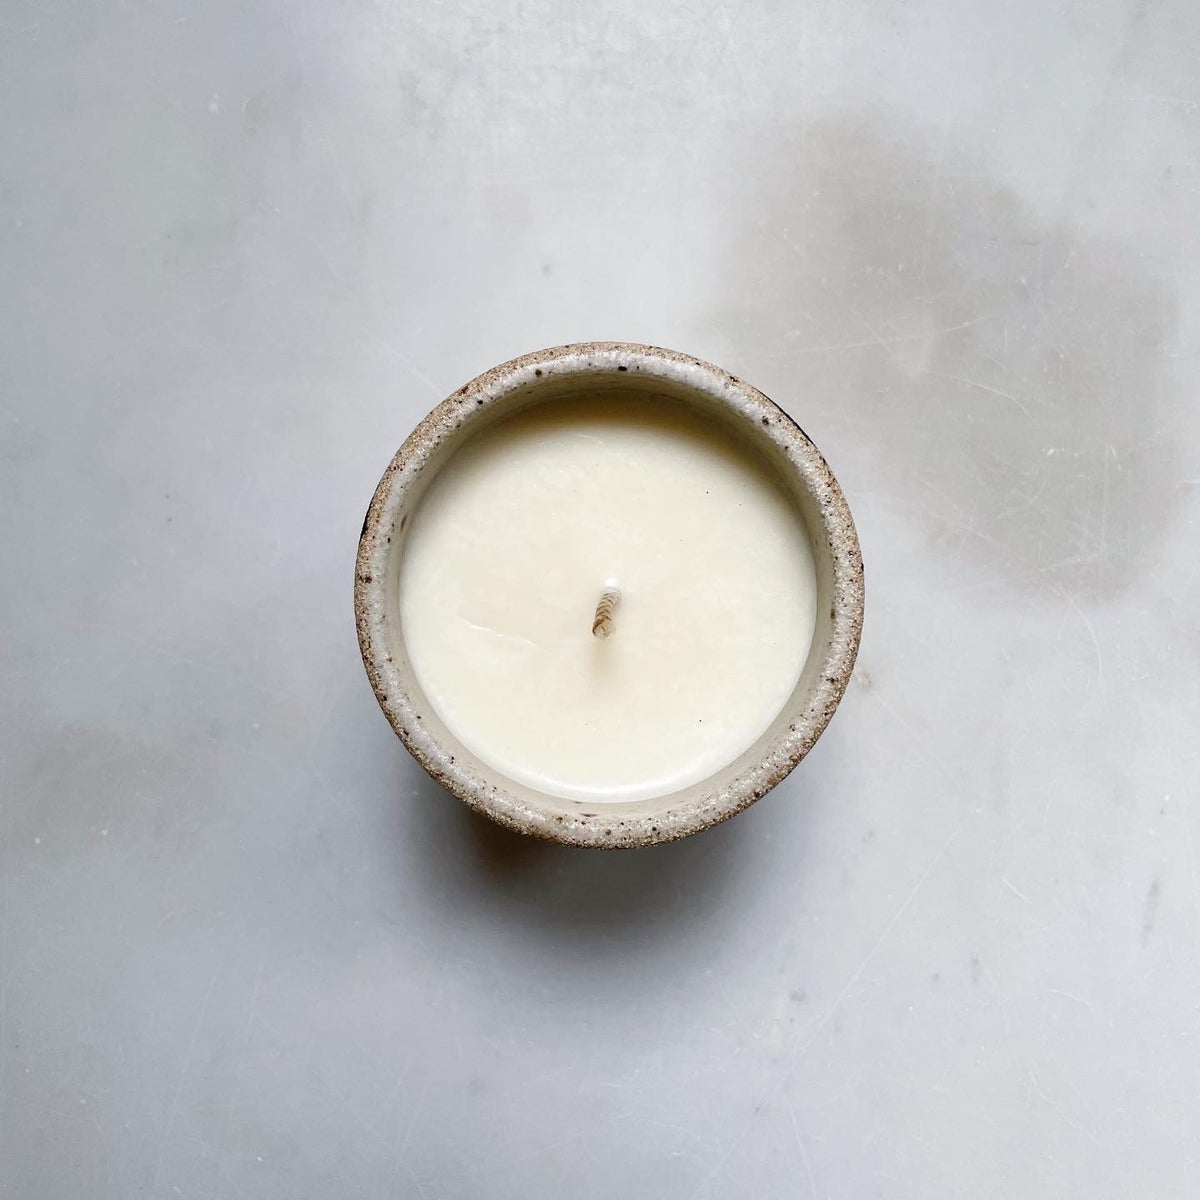 Image of Scented soy candle - leopard pattern